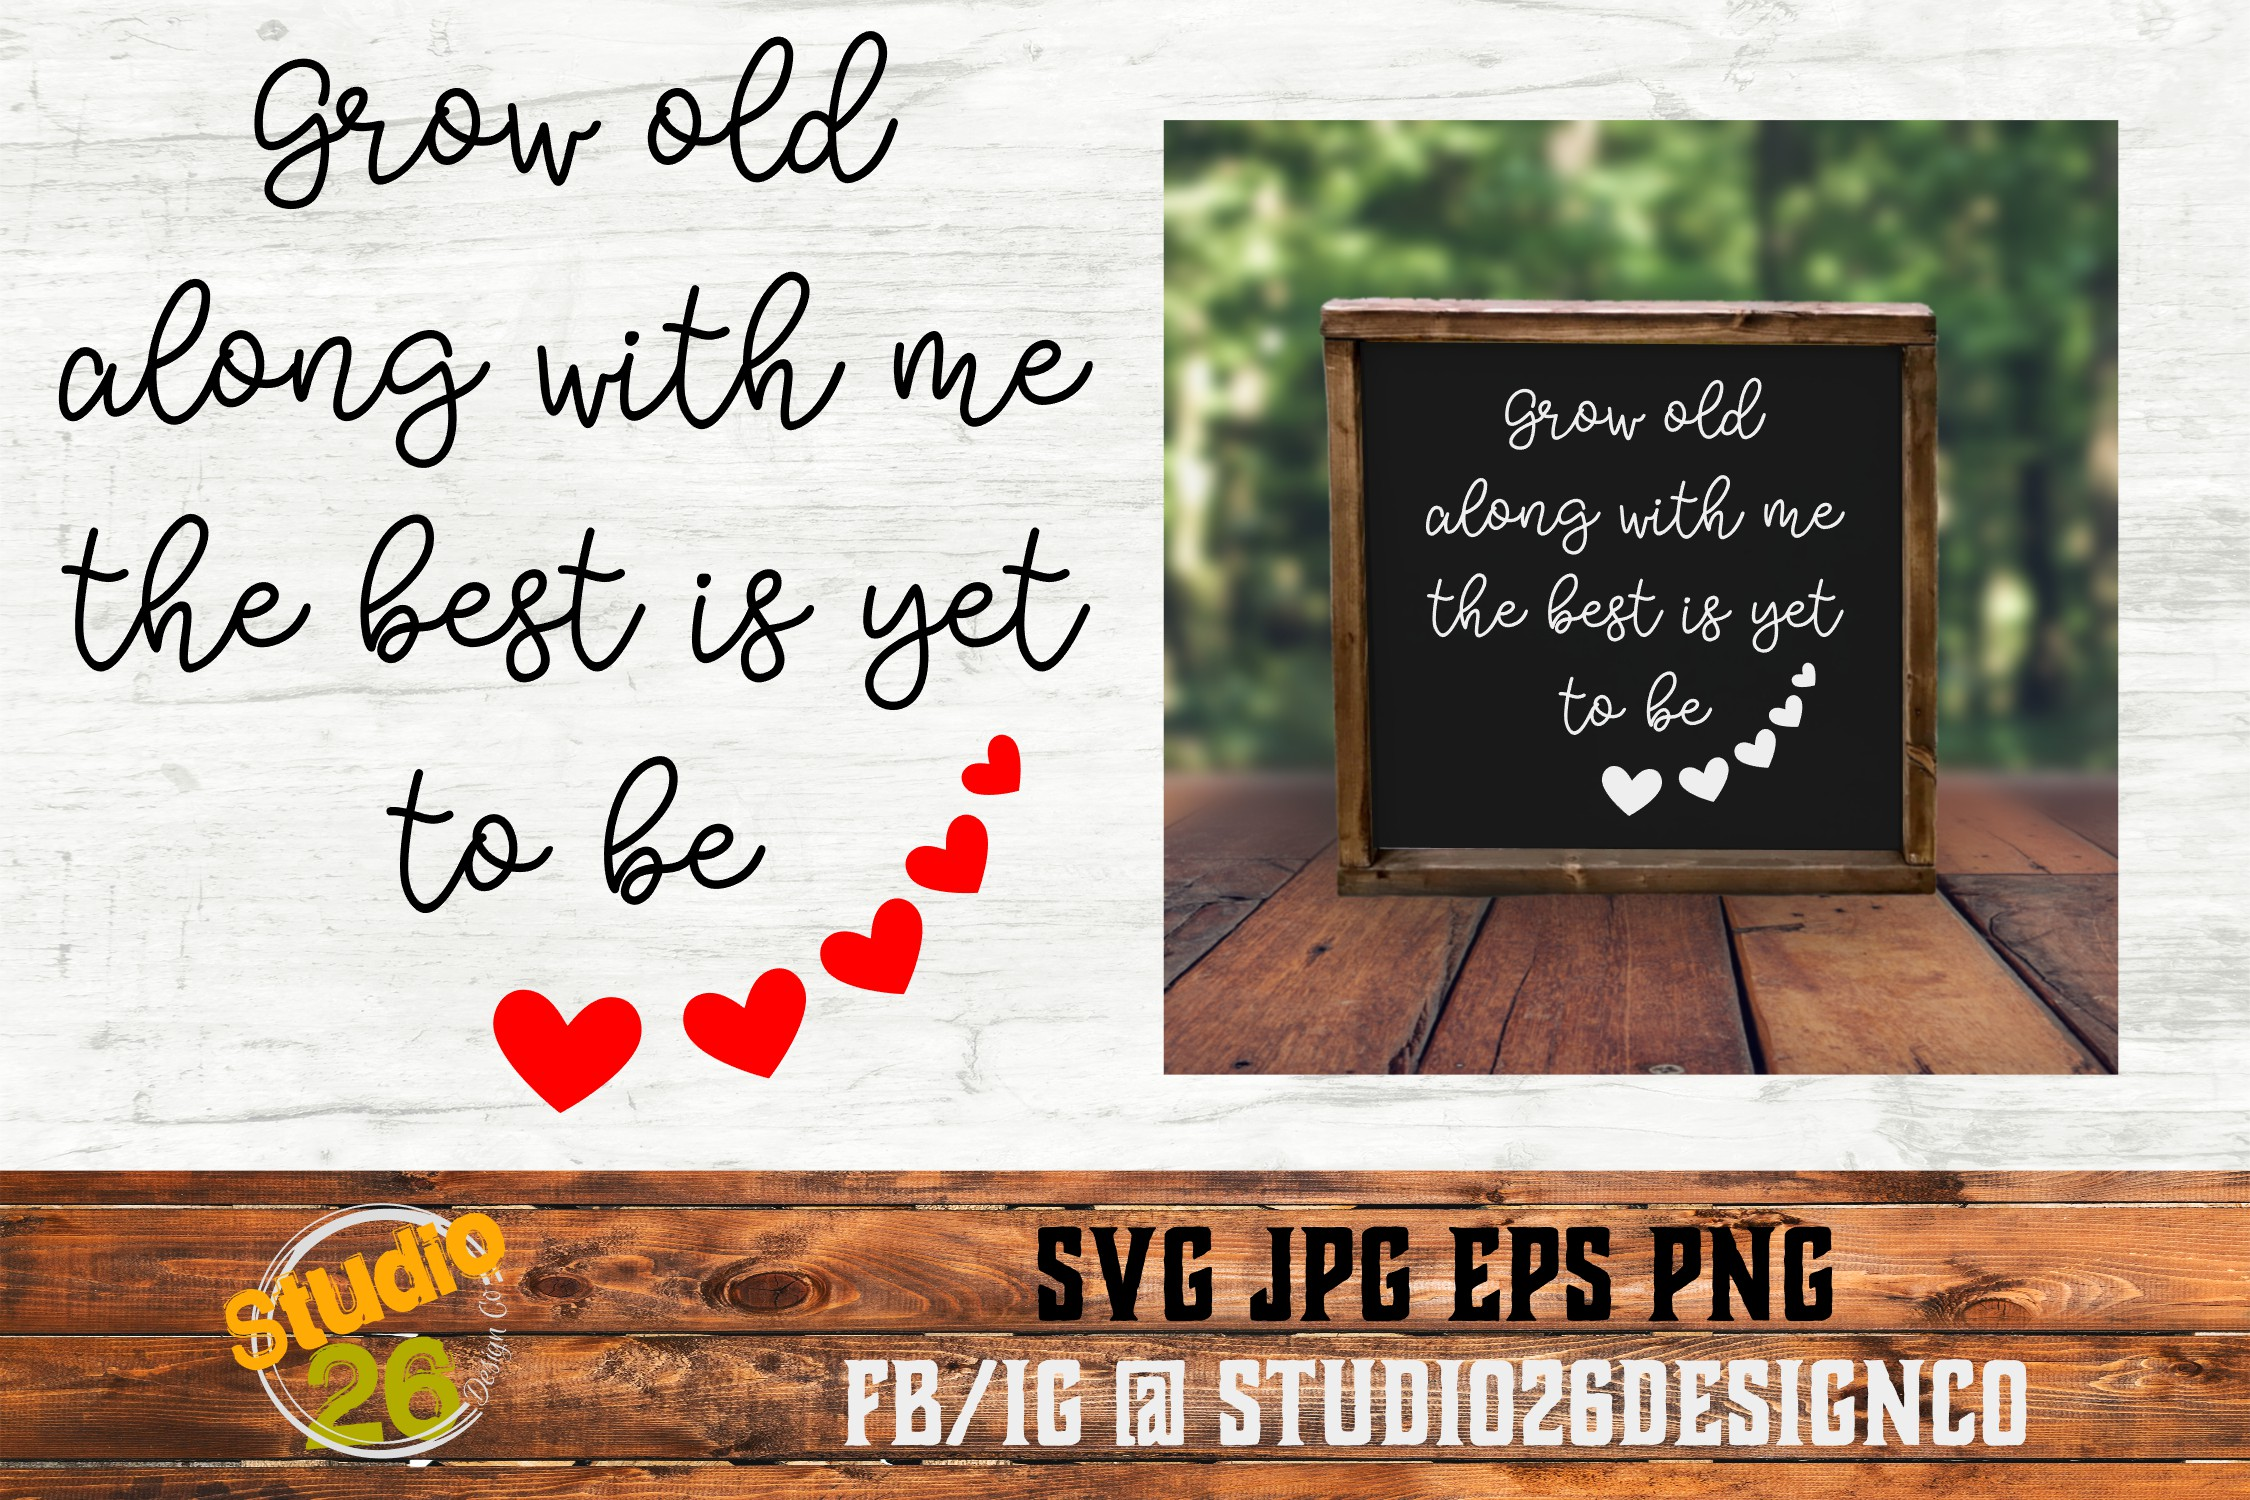 Grow old along with me - SVG PNG EPS example image 2